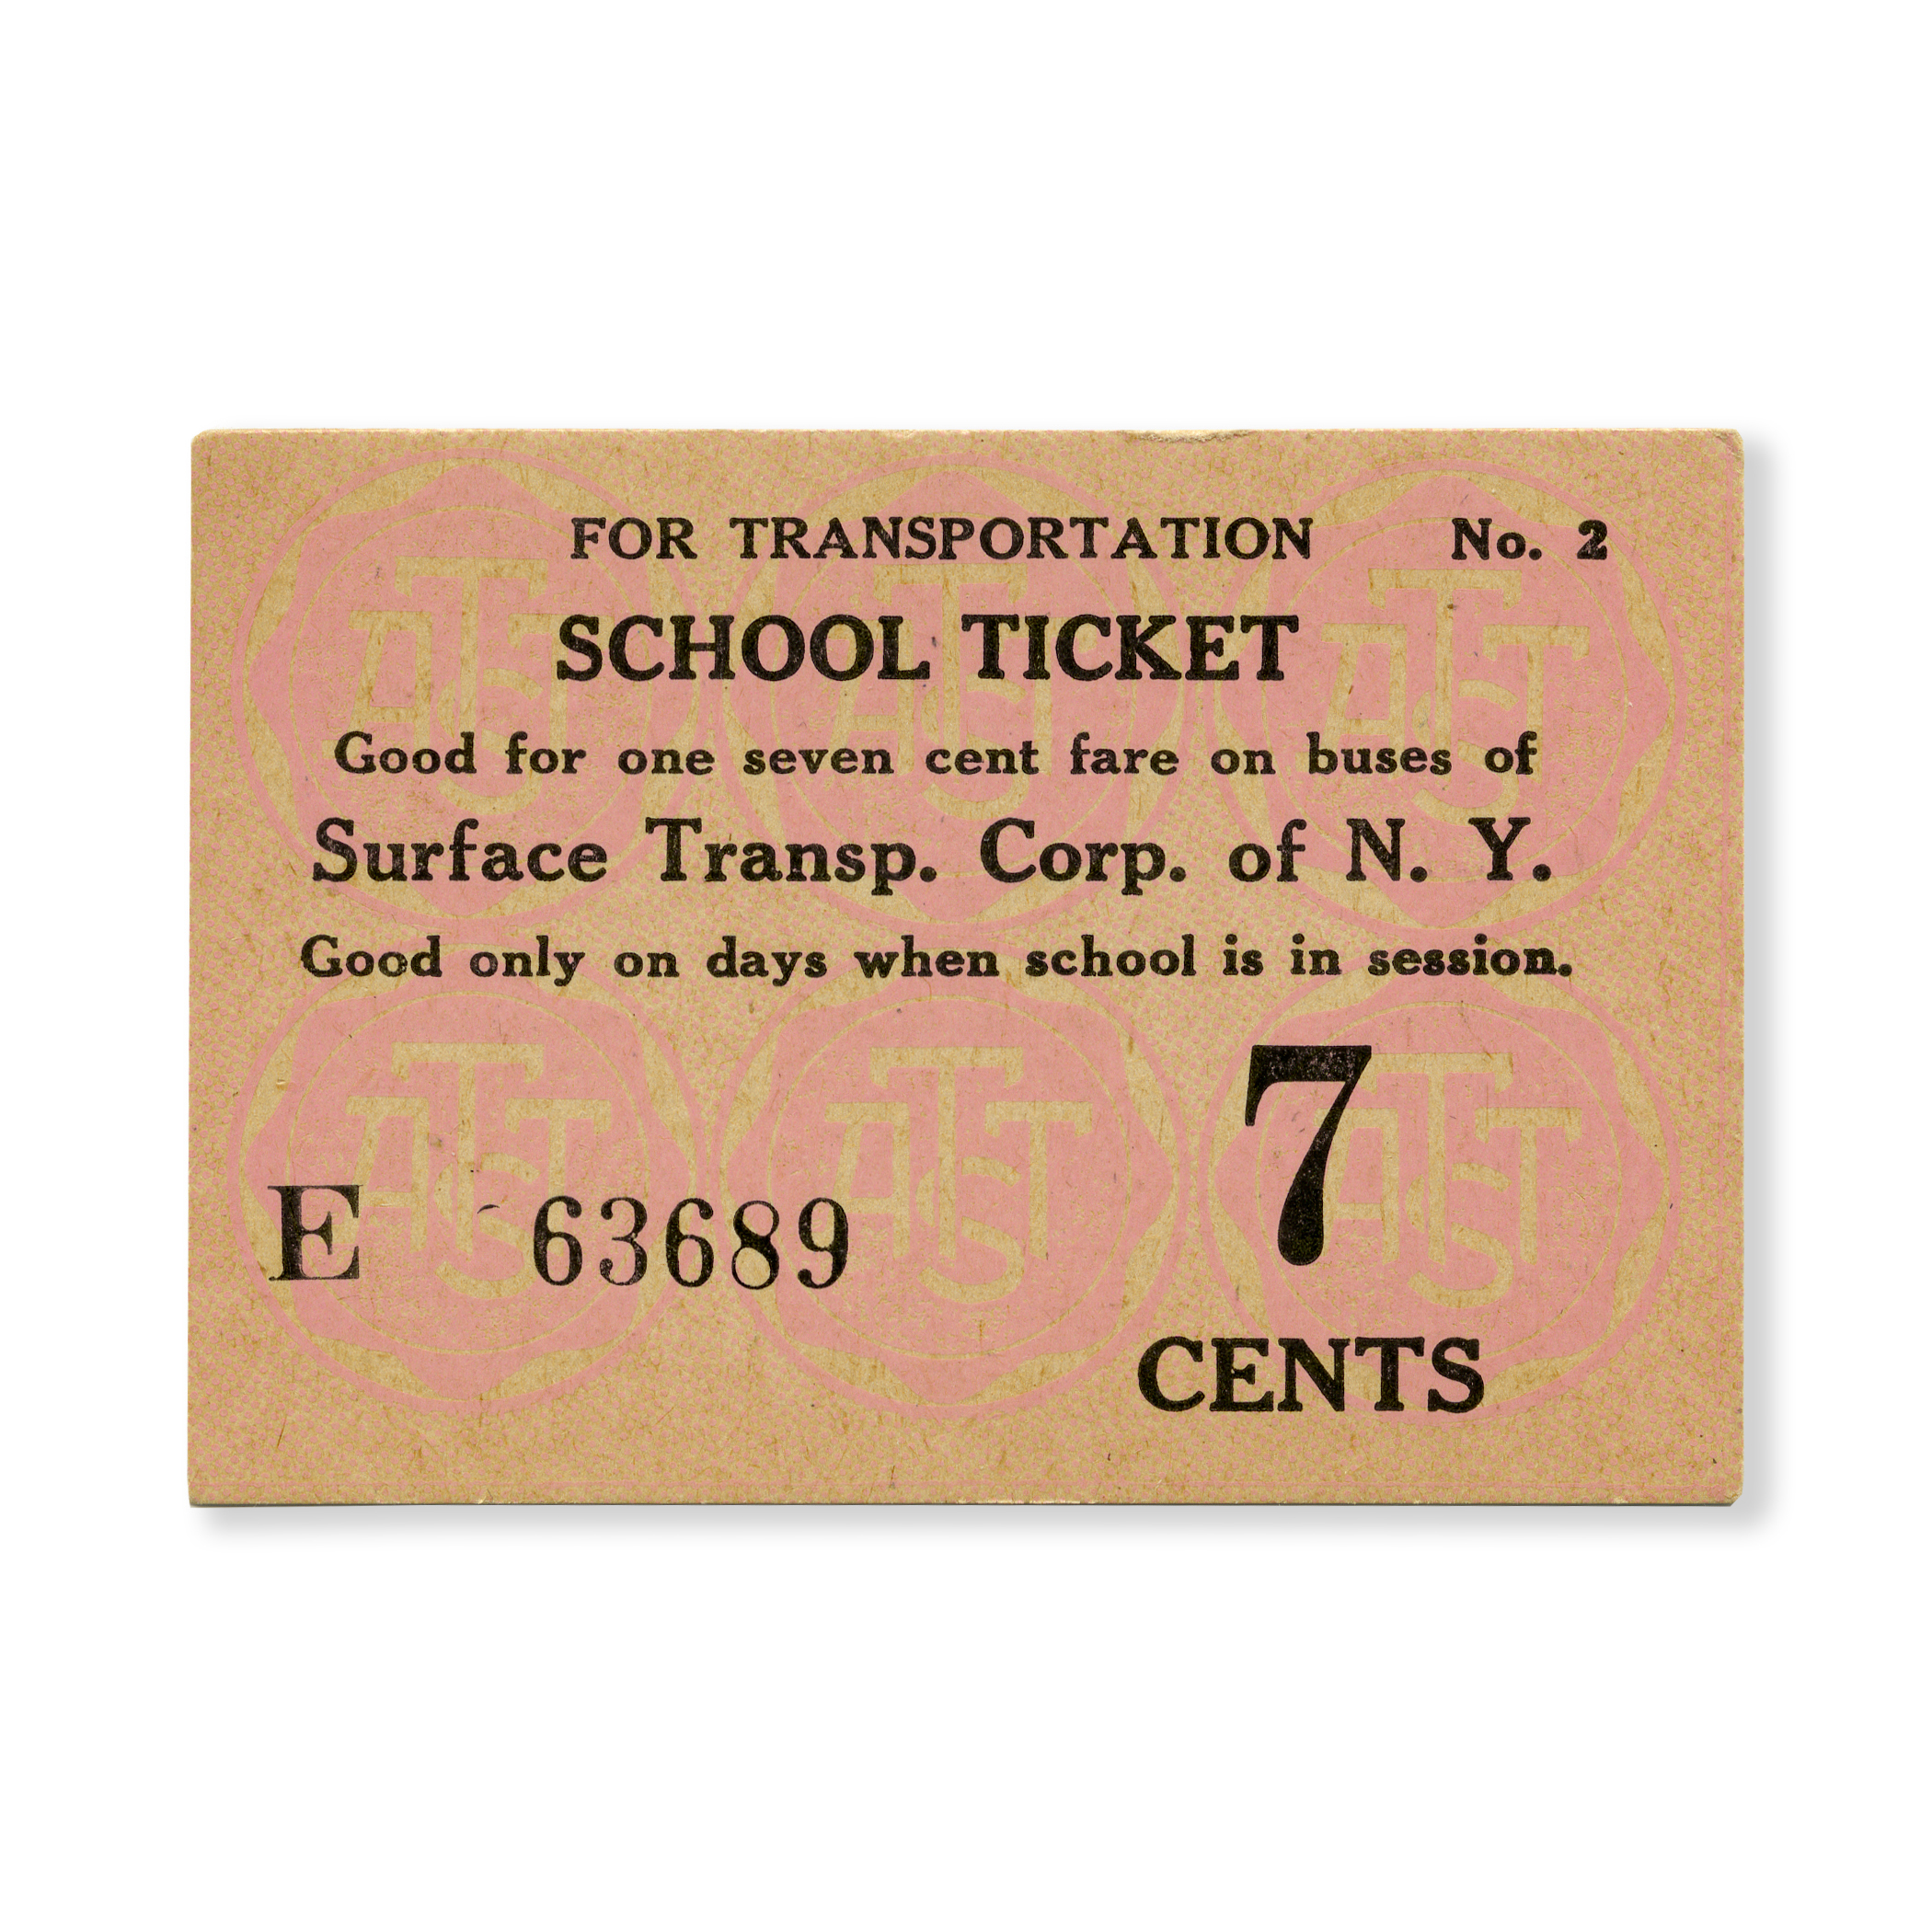 the_nycta_project_Surface_Transportation_Corp_Of_NY_MABSTOA_7_Cent_School_Pass_NYCTA.jpg